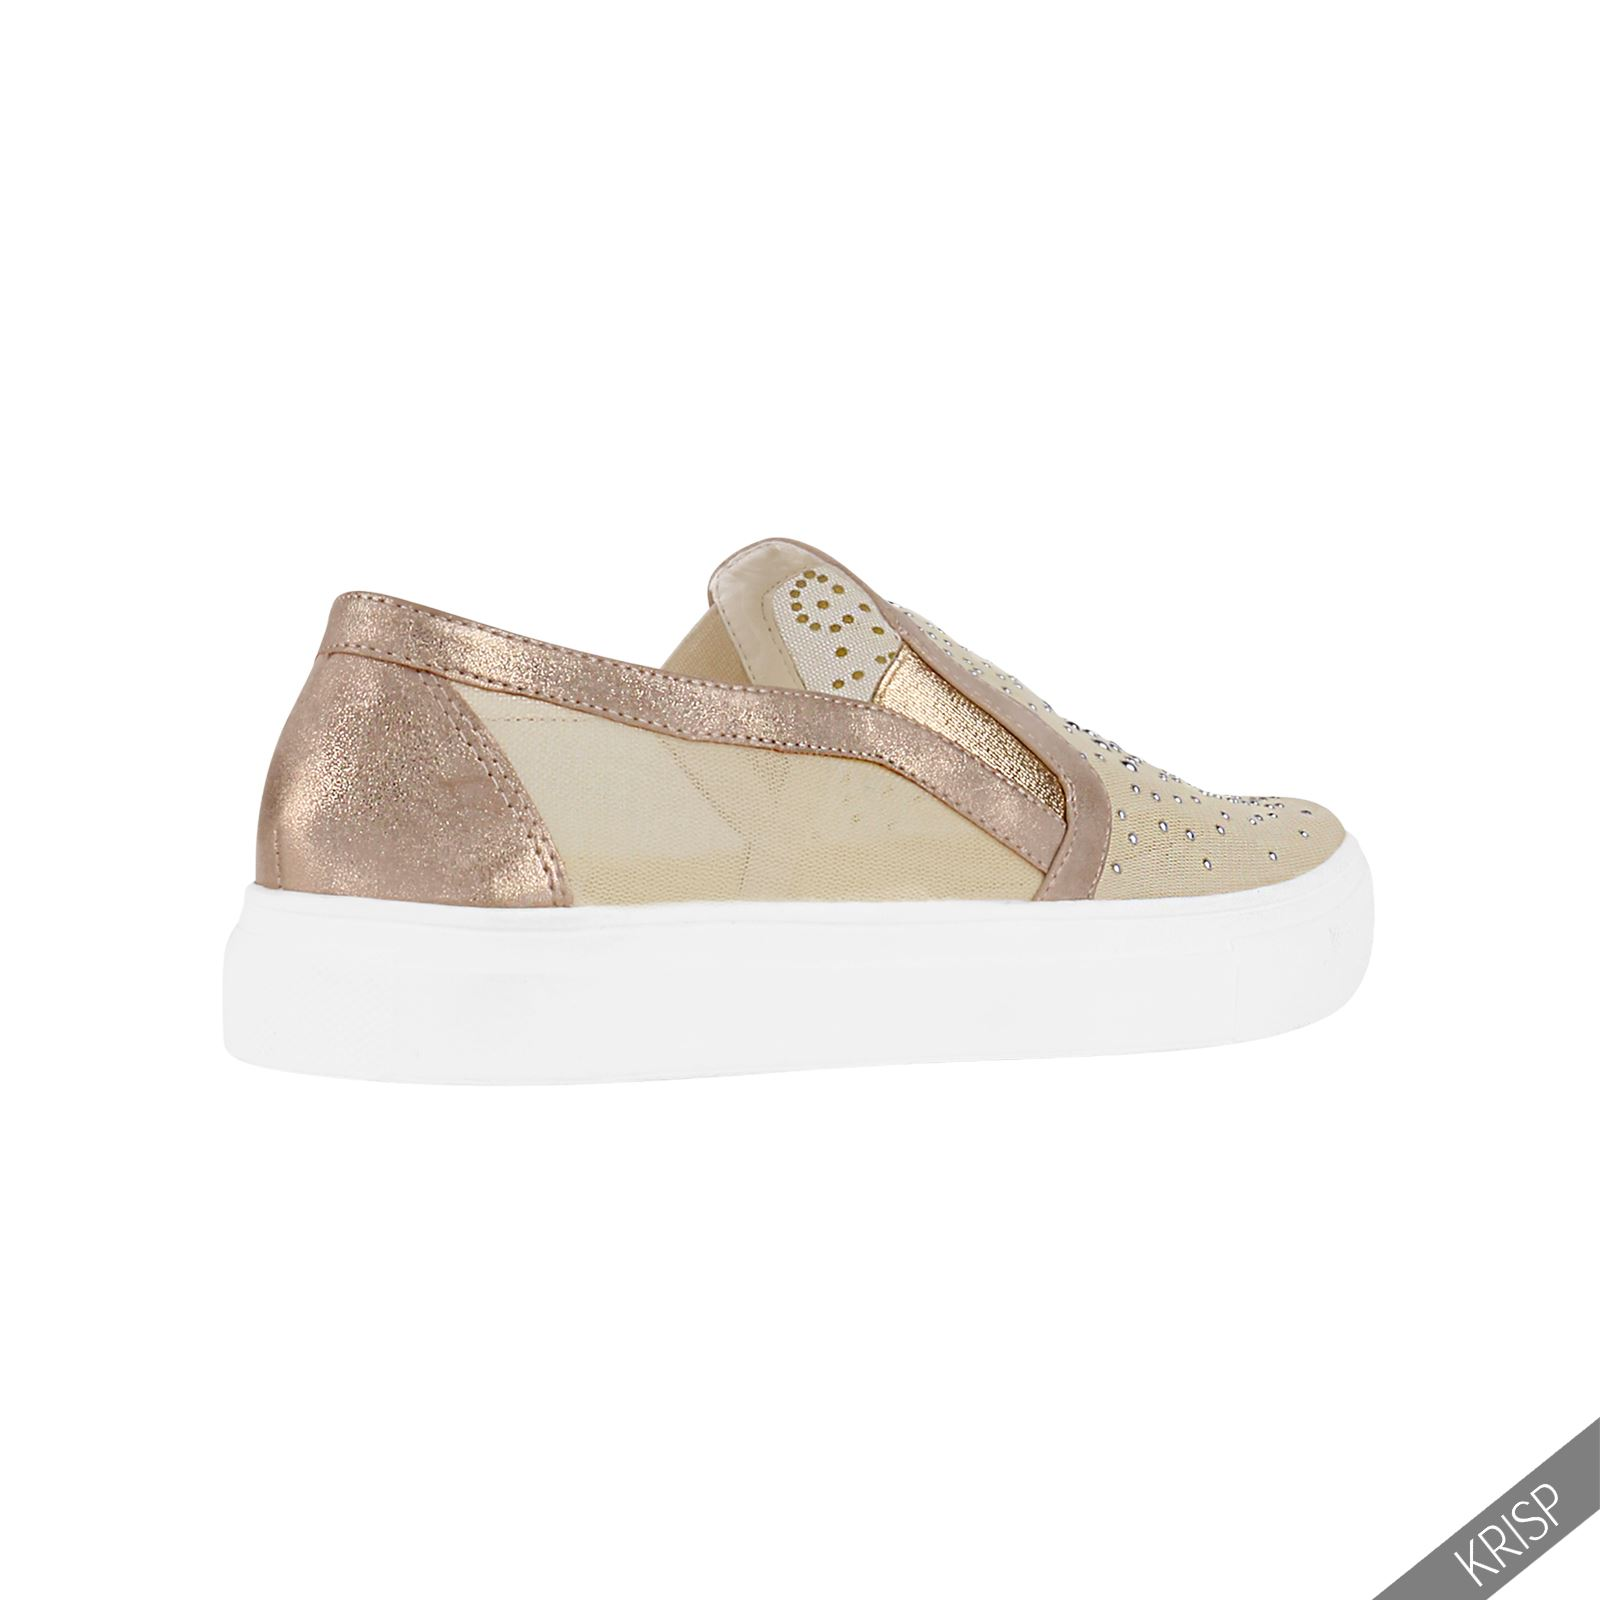 Women's Trainers Trainers, Sneakers 29